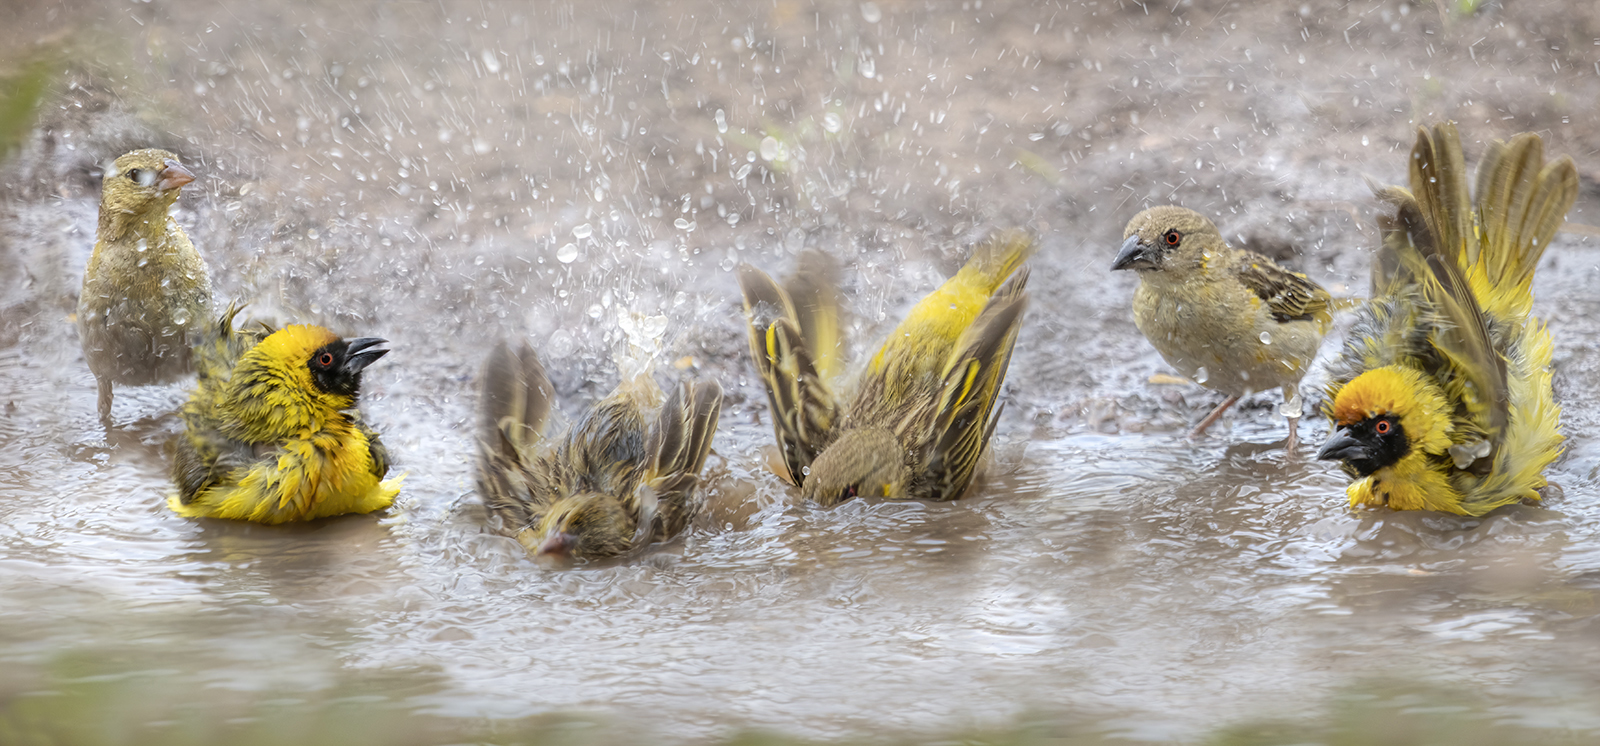 weaver birds bathing